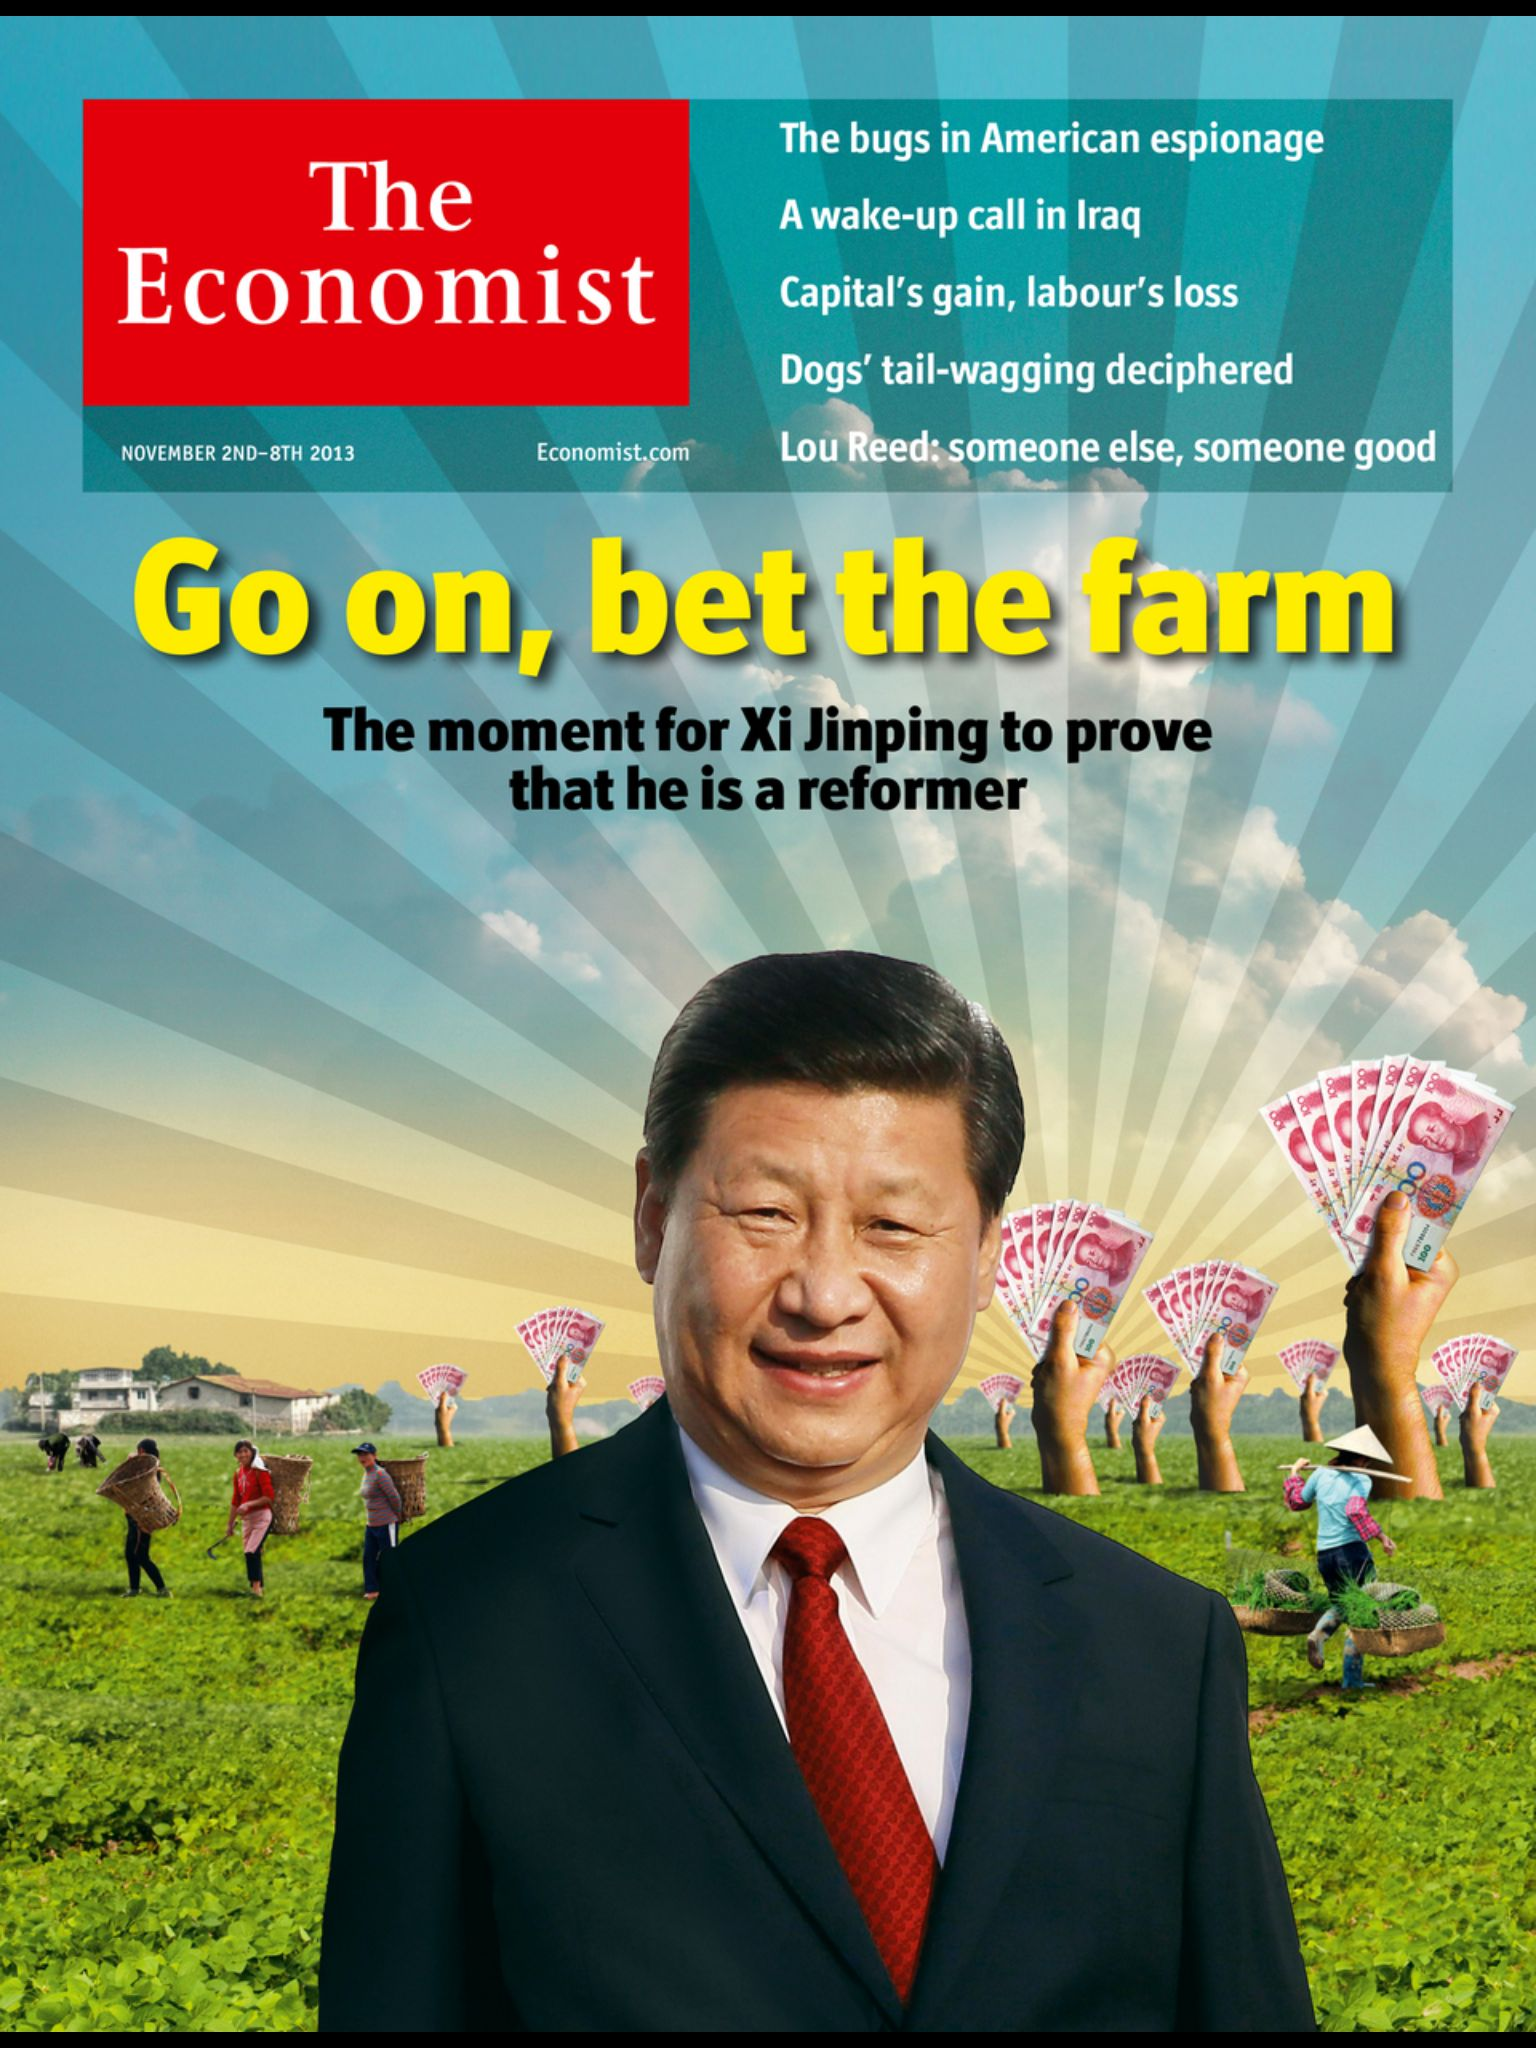 http://www.chinas-global-media-image.net/media/uploads/cover/11/images/Economist131102.jpg